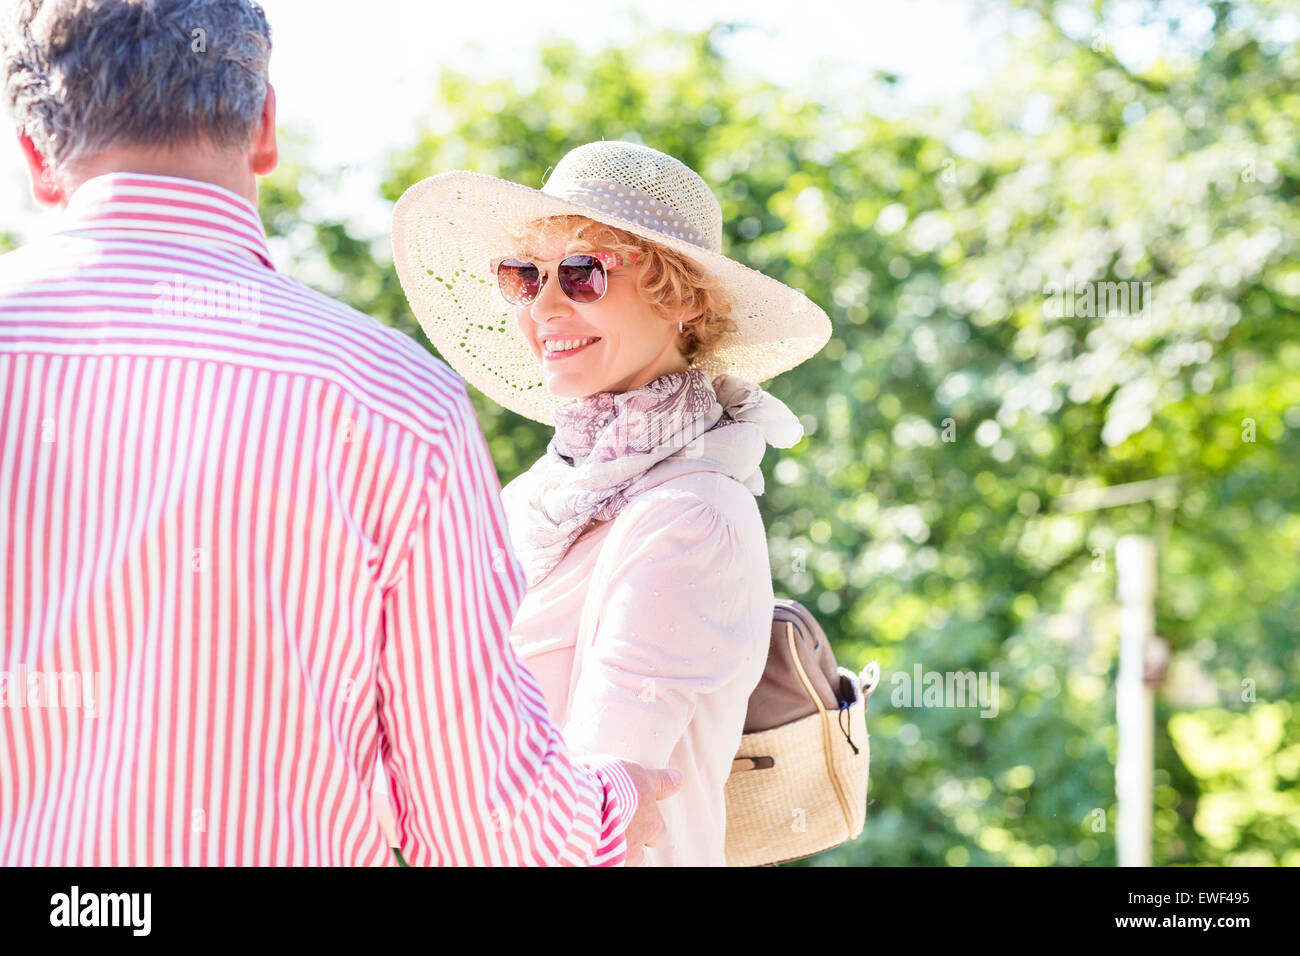 Happy middle-aged woman with man in park Stock Photo